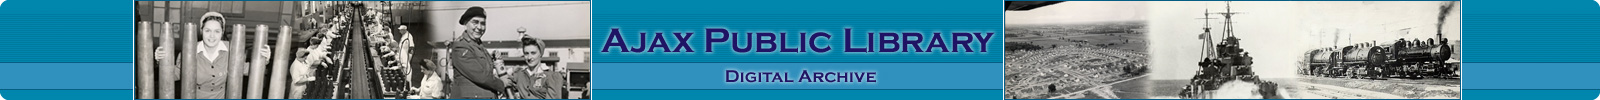 Ajax Public Library Digital Archive